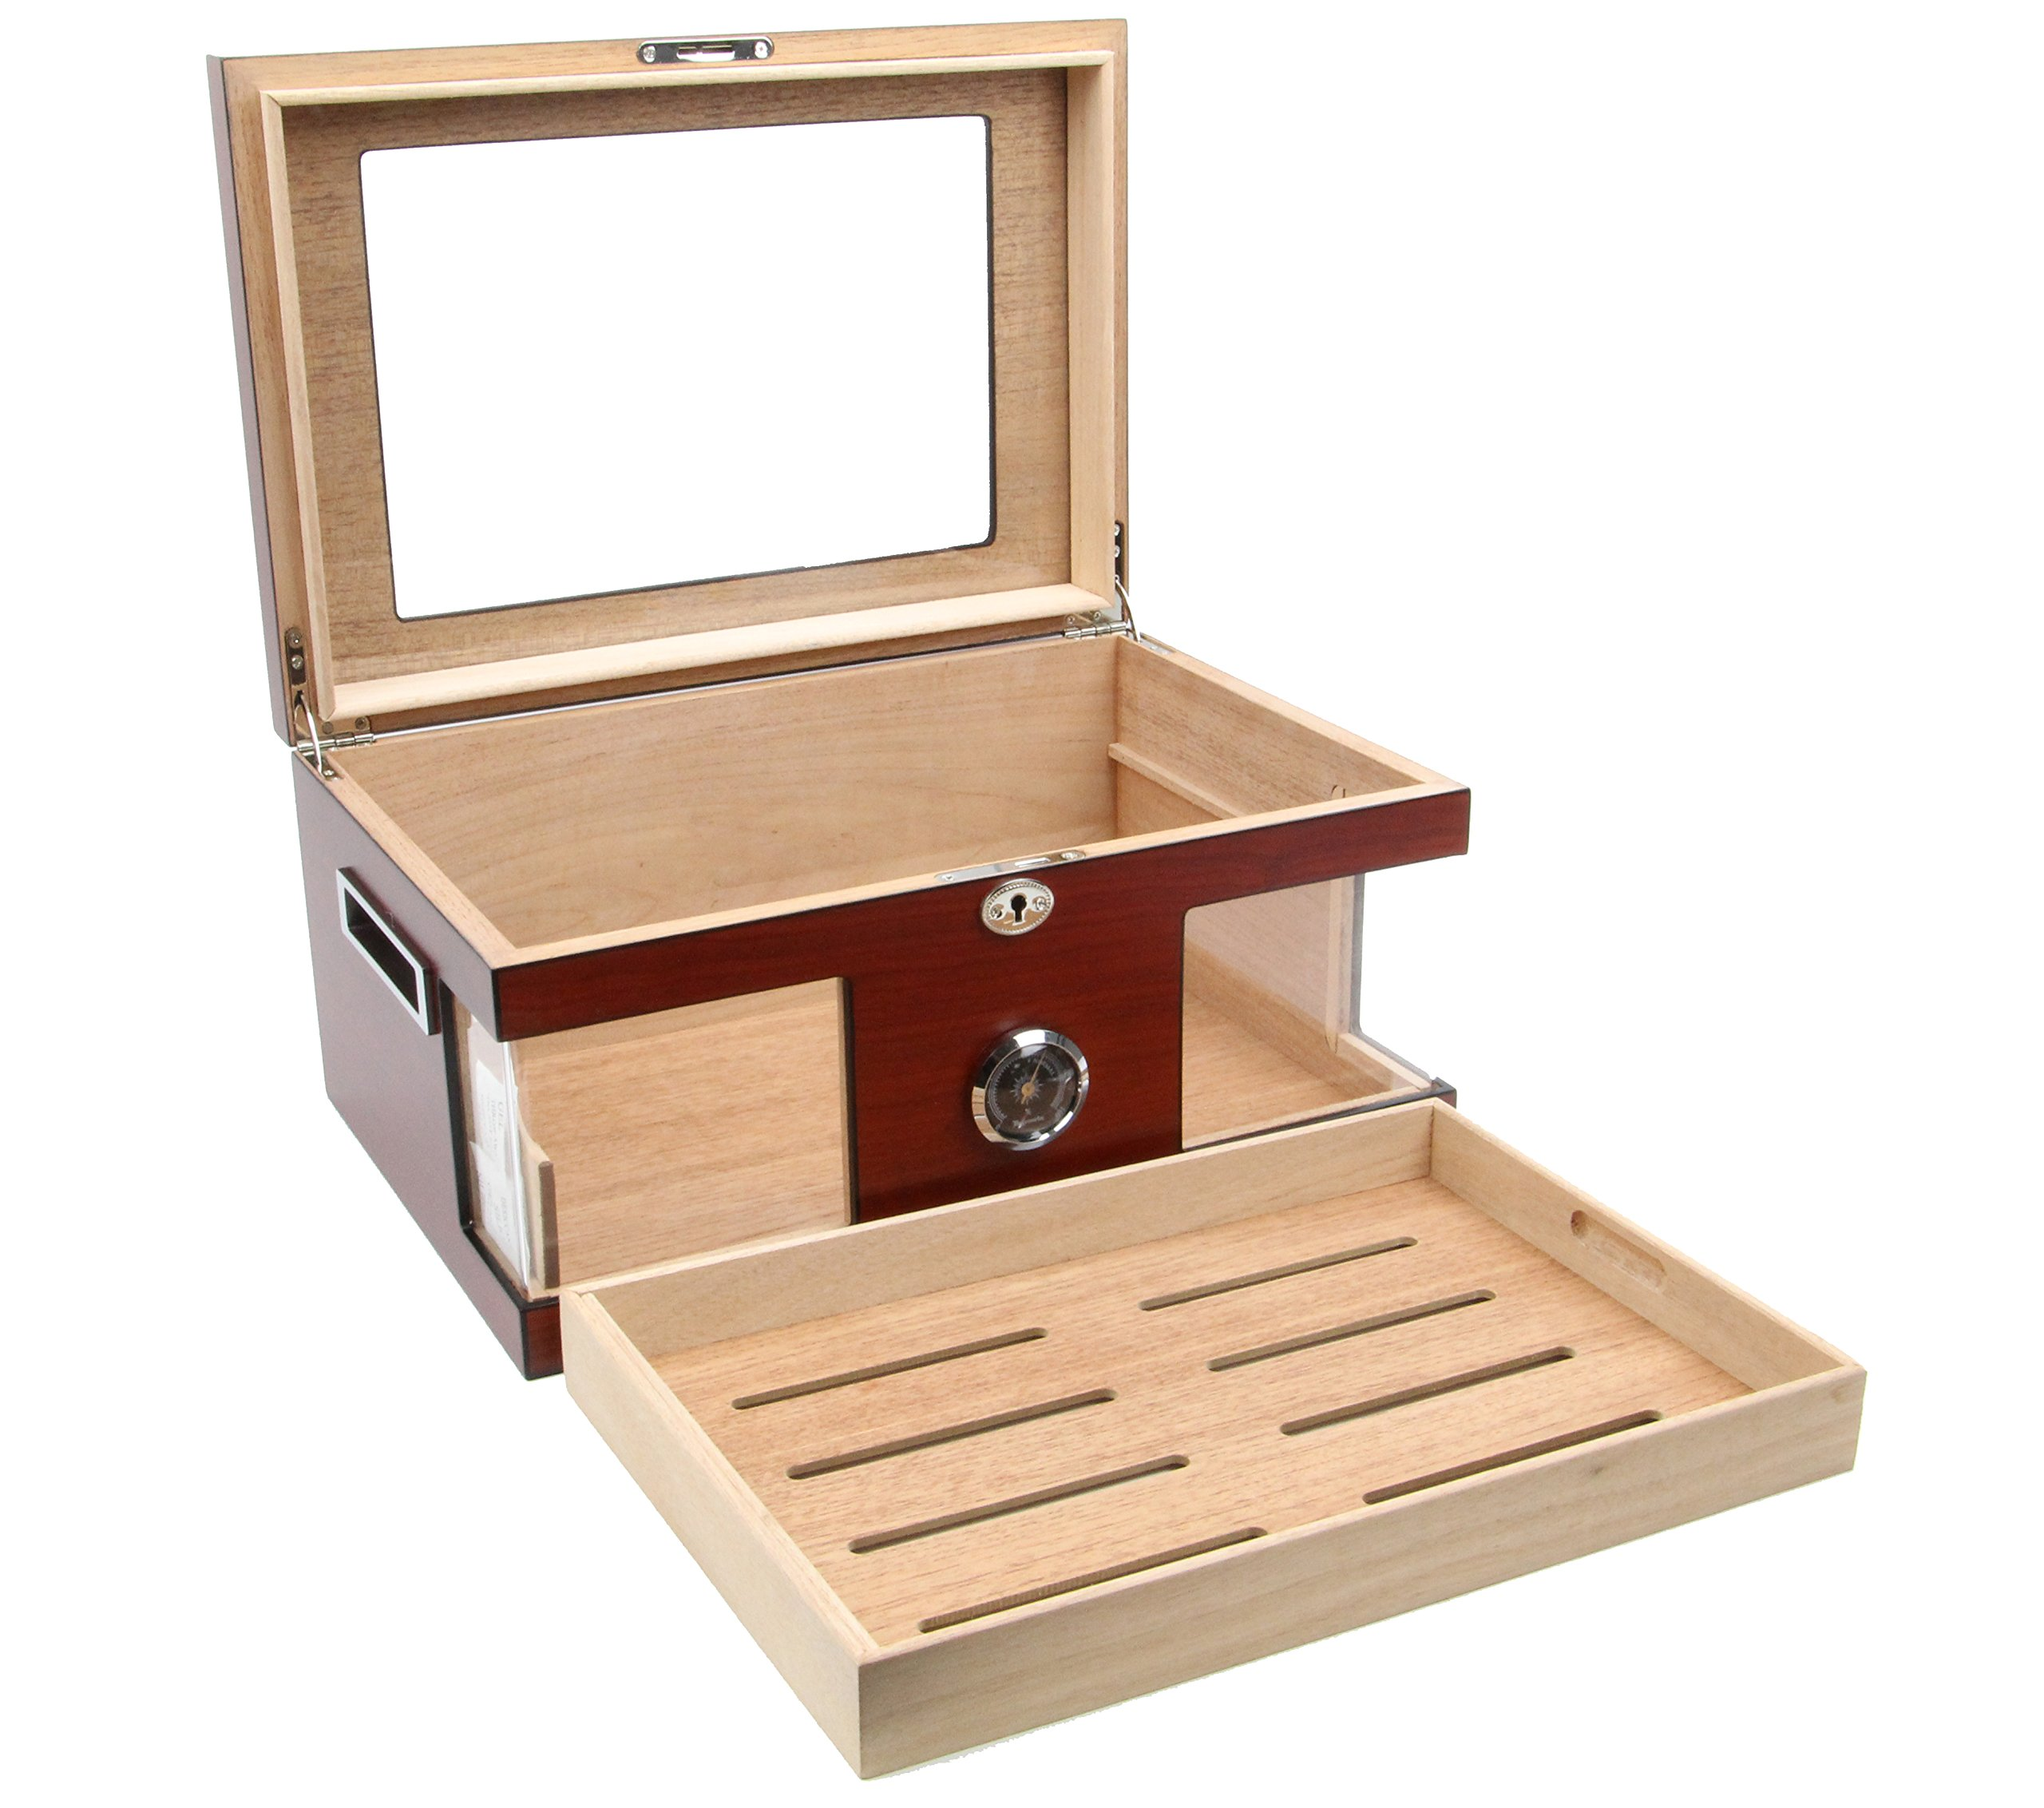 Decorebay SAVOY Executive Boveda Humidor by decore Bay (Image #3)